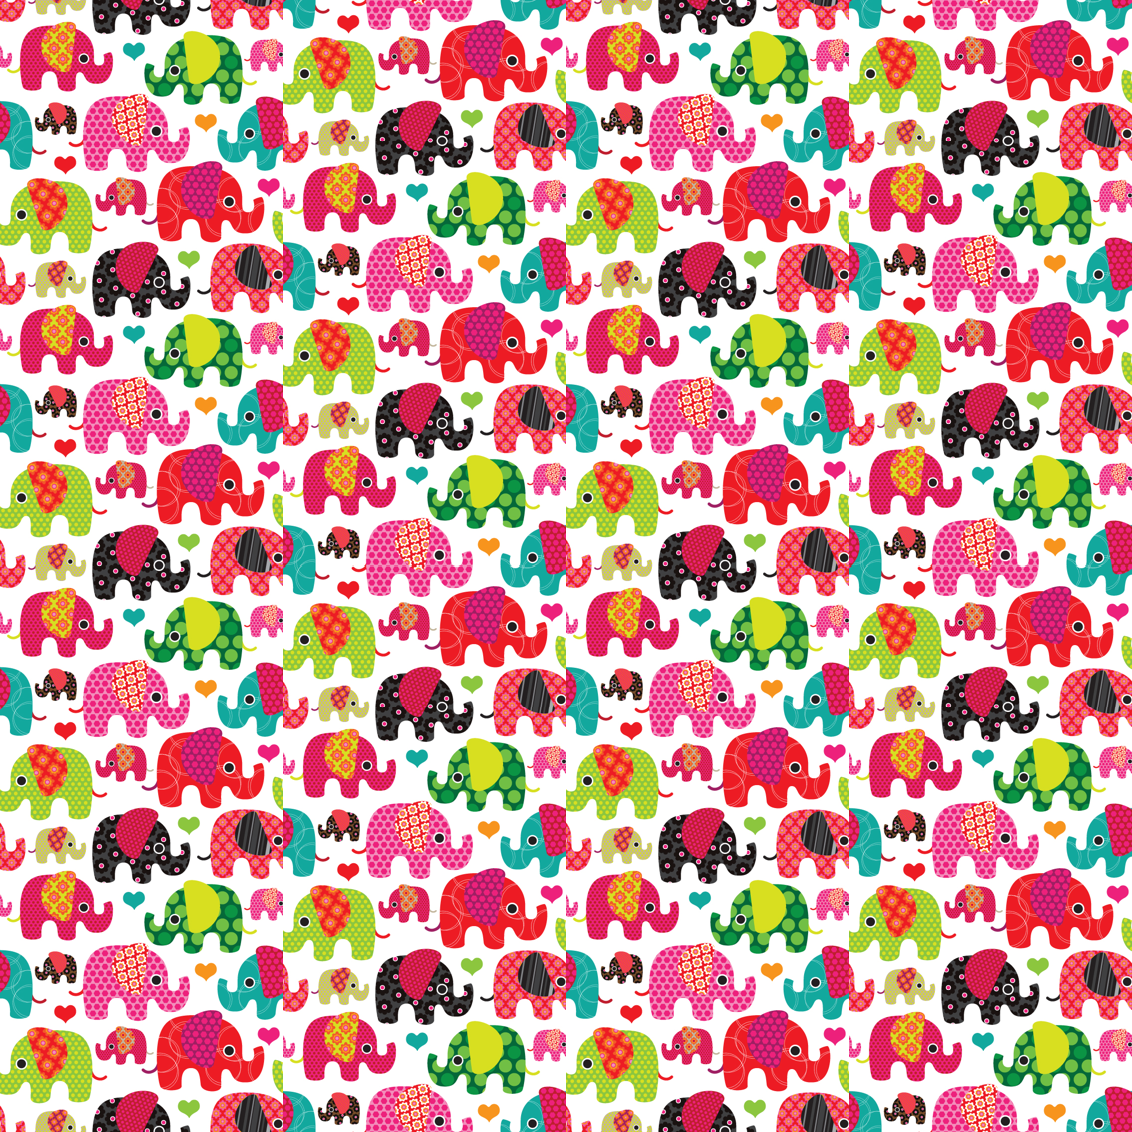 cartoon elephant wallpaper - photo #34